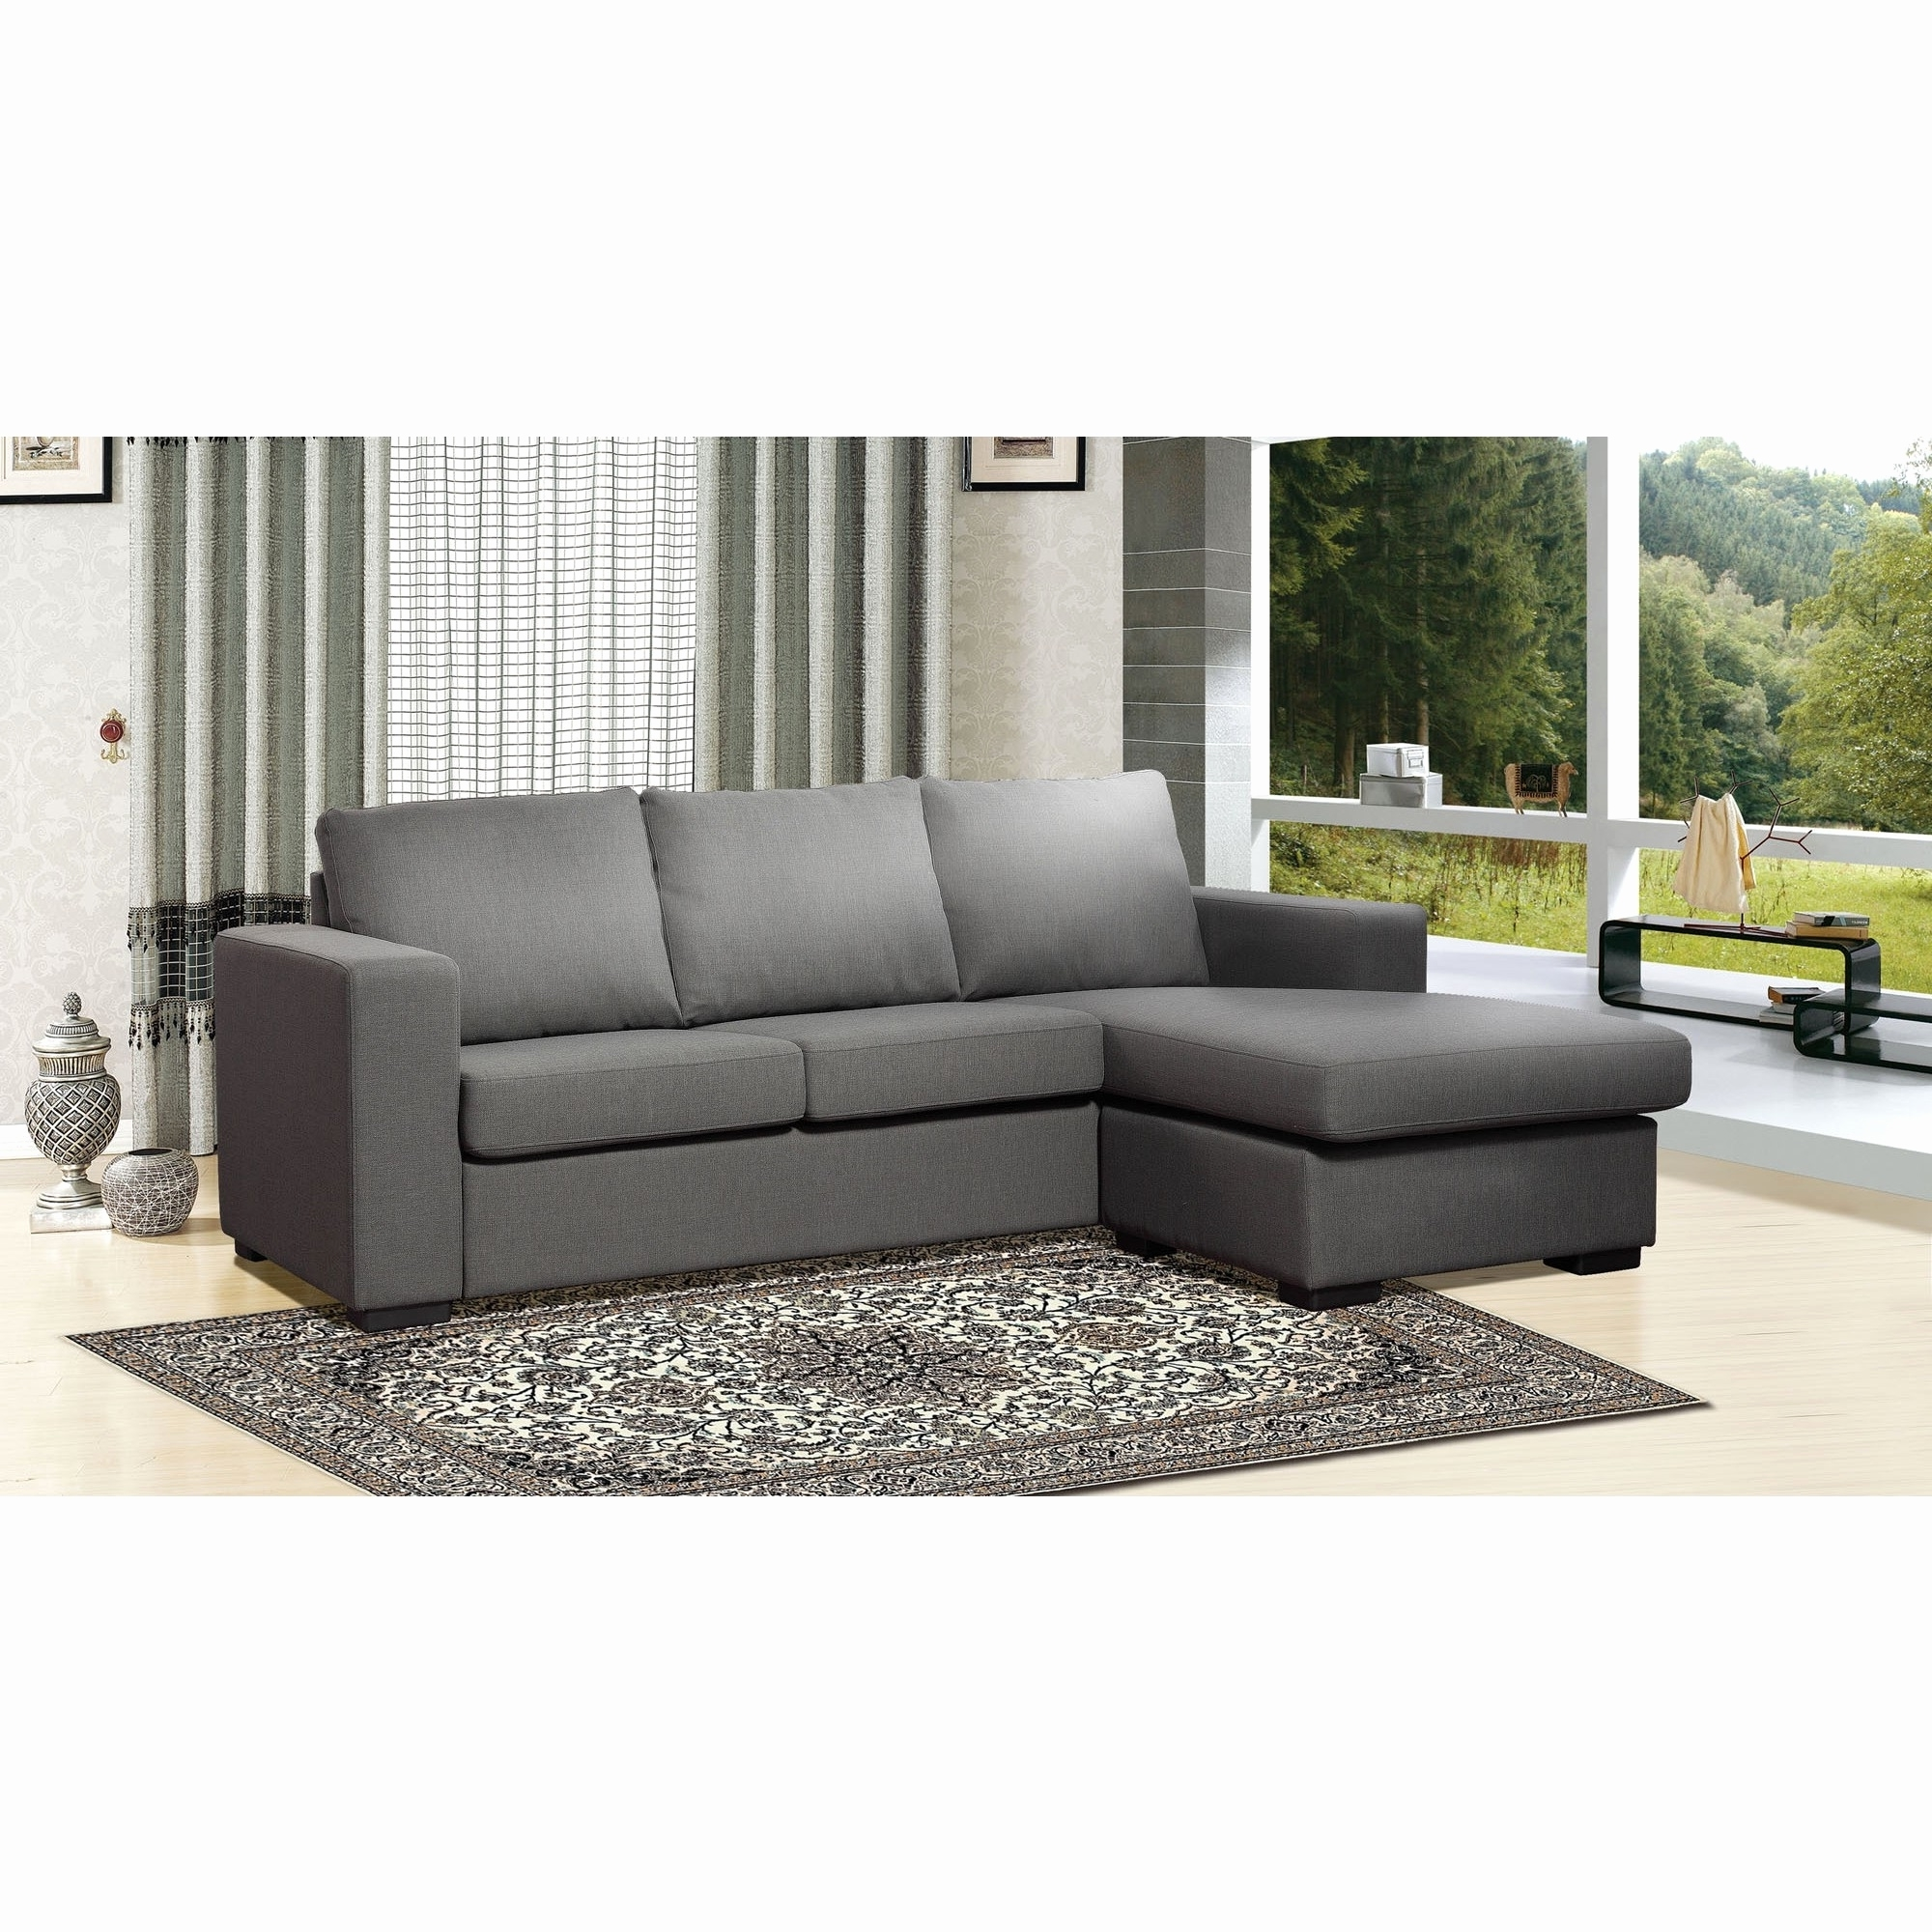 Grey Sectional Sofas With Chaise Regarding Fashionable Unique Gray Sectional Sofa With Chaise 2018 – Couches Ideas (View 9 of 15)